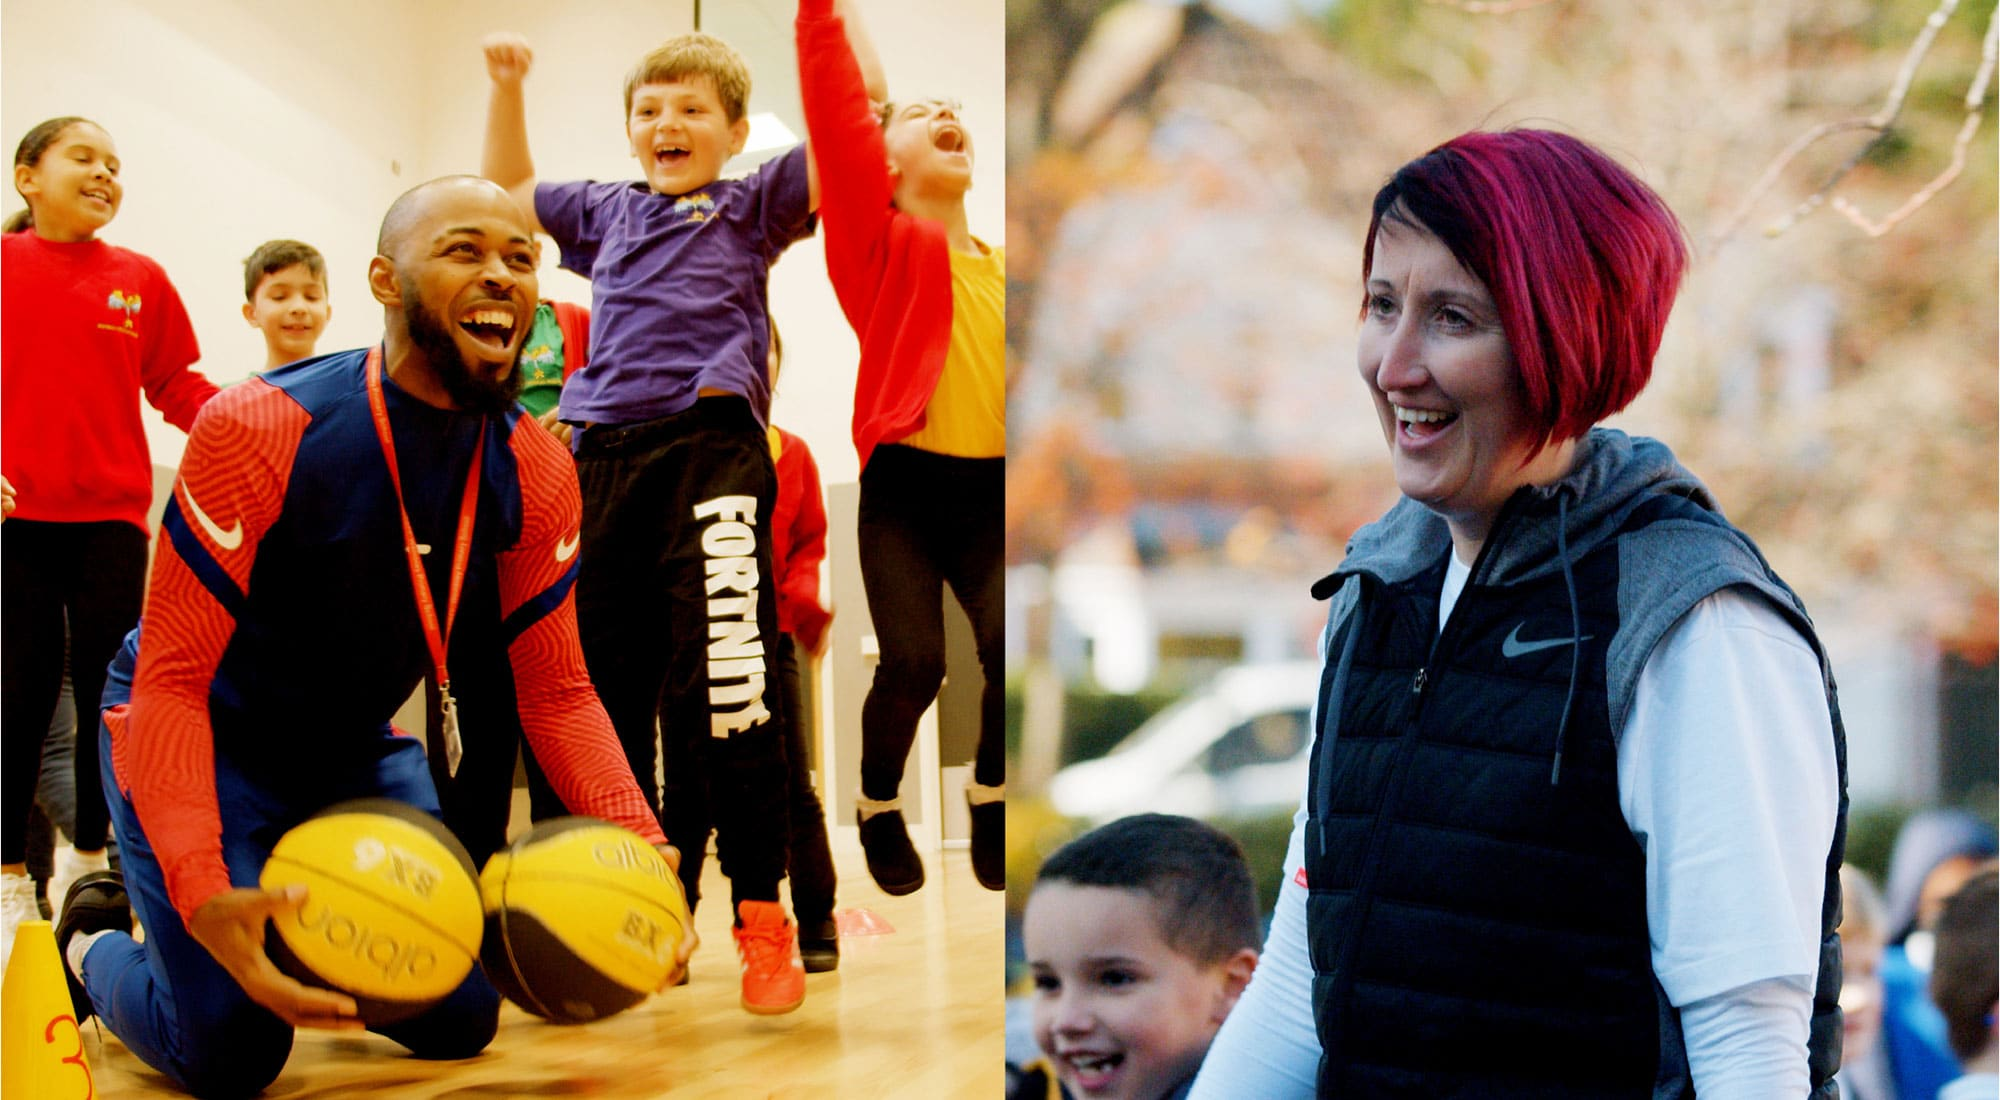 ukactive Kids and Nike recognise winners of Active School Hero 2020 for keeping students moving through COVID-19 pandemic